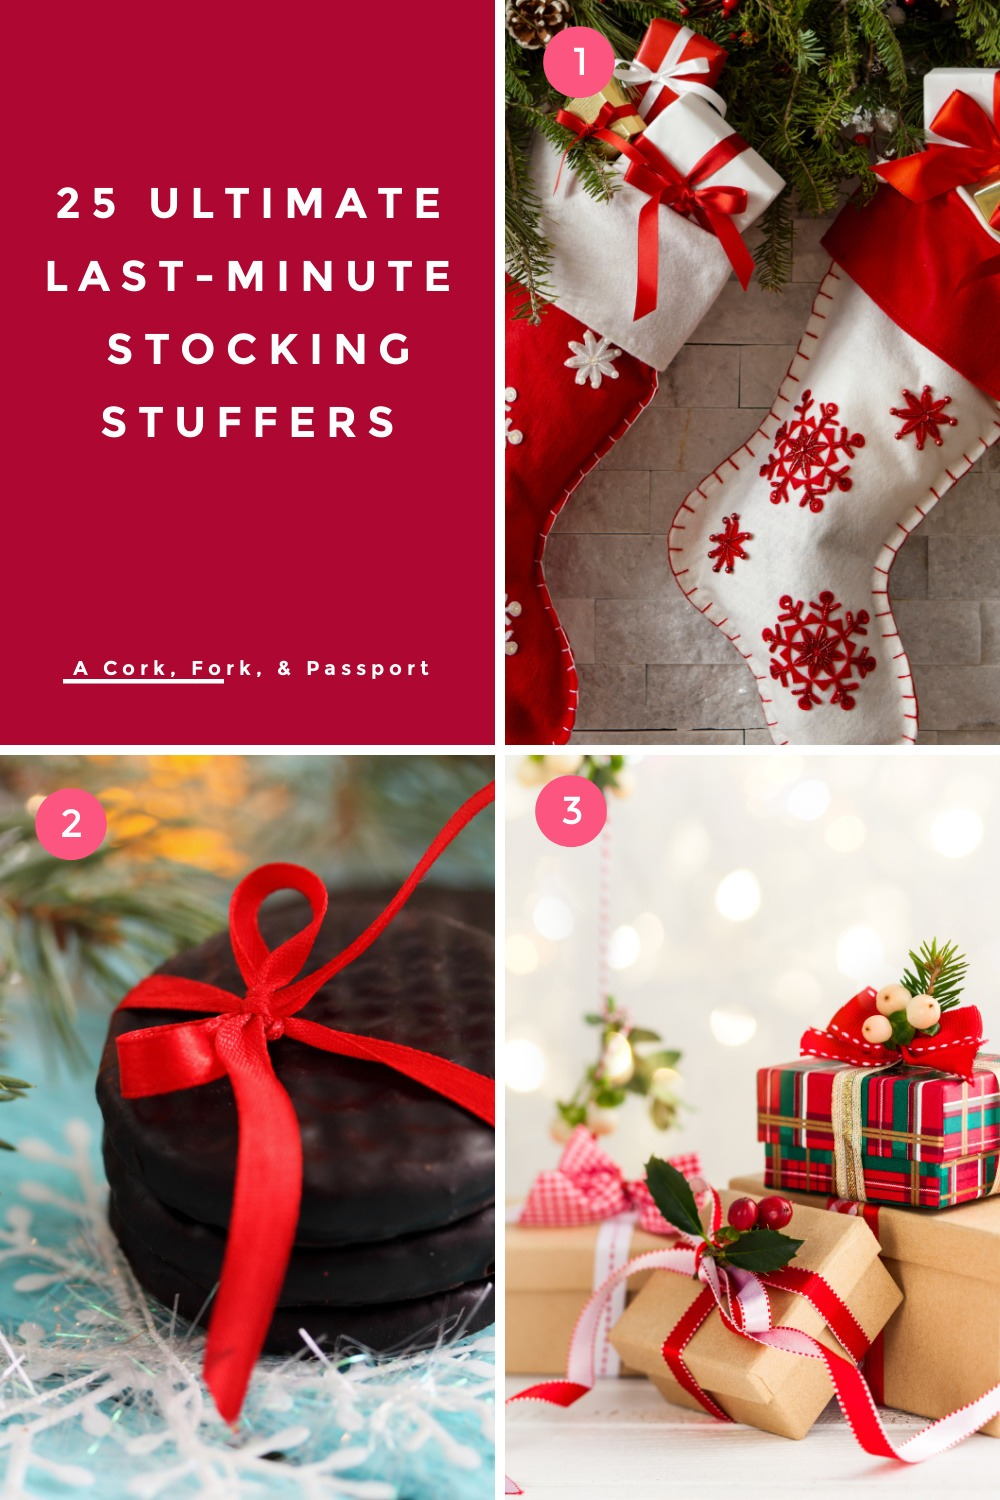 25 Ultimate Last-Minute Stocking Stuffer Ideas